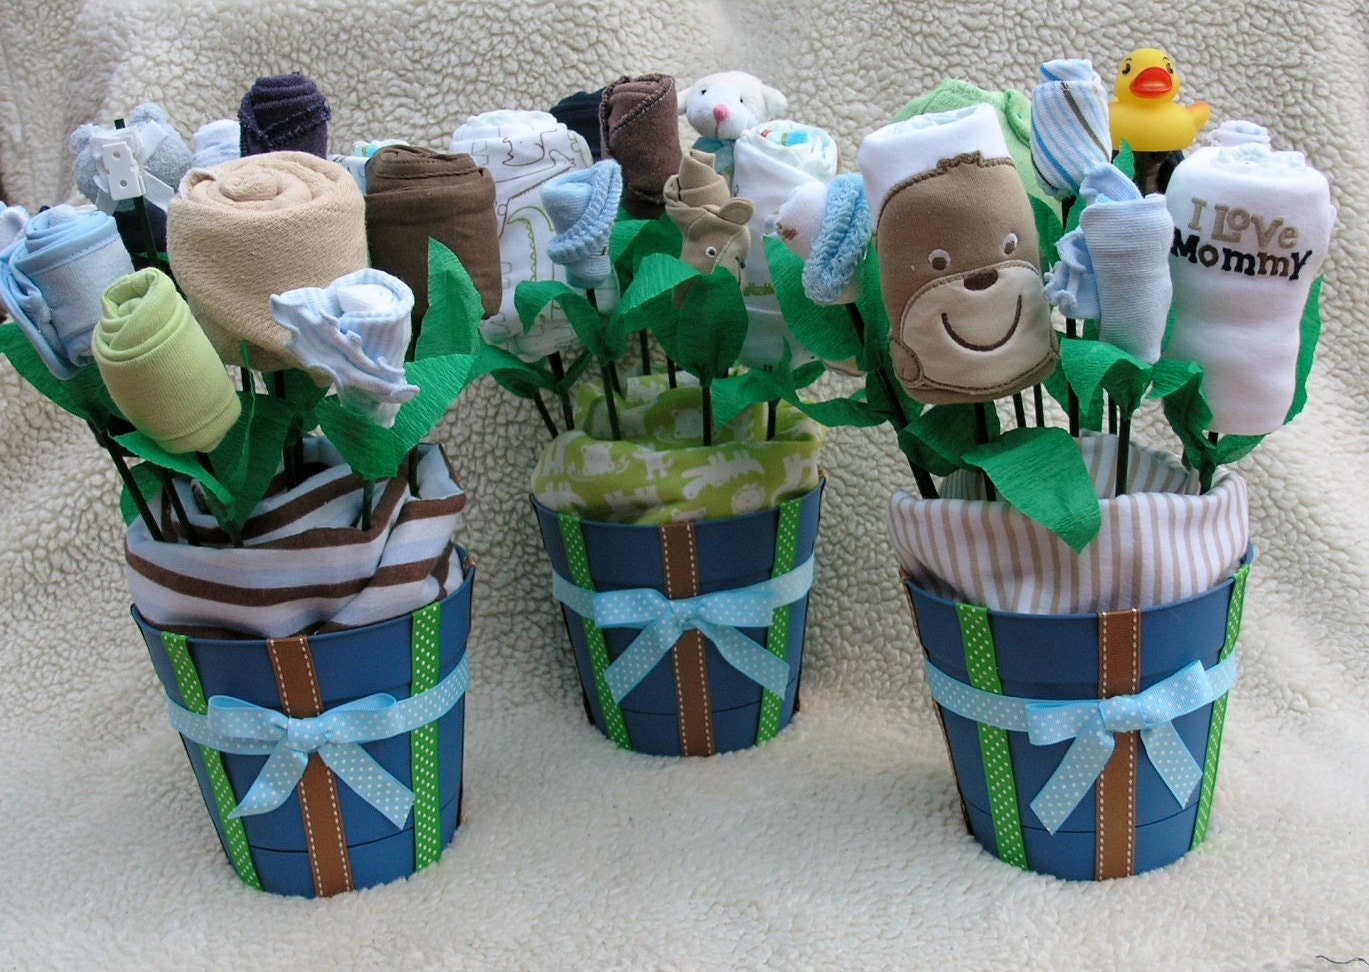 baby shower on pinterest rubber duck baby boy shower and duck baby